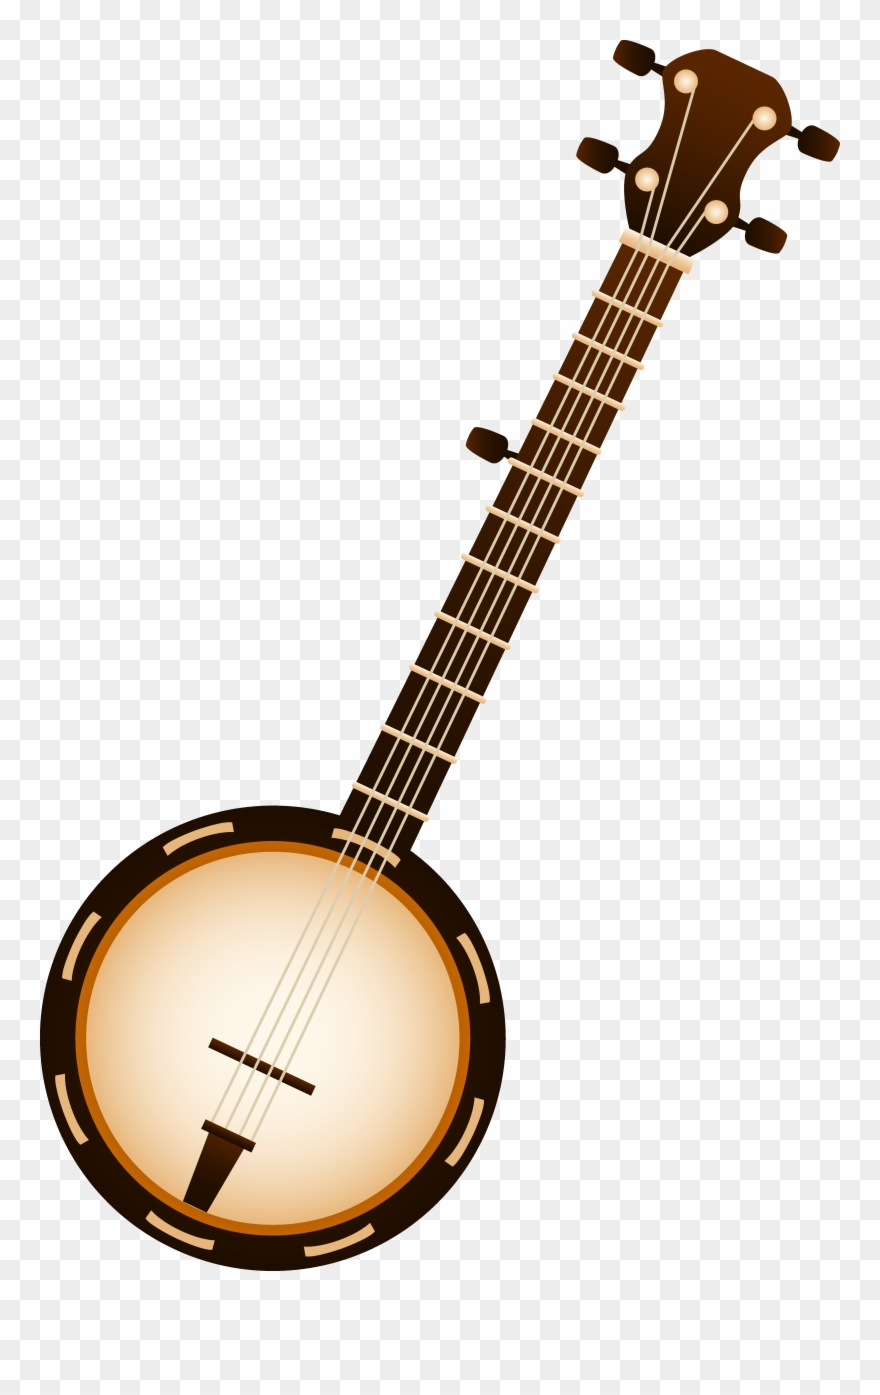 png transparent download Banjo clipart crossed. Cliparts sweet png download.